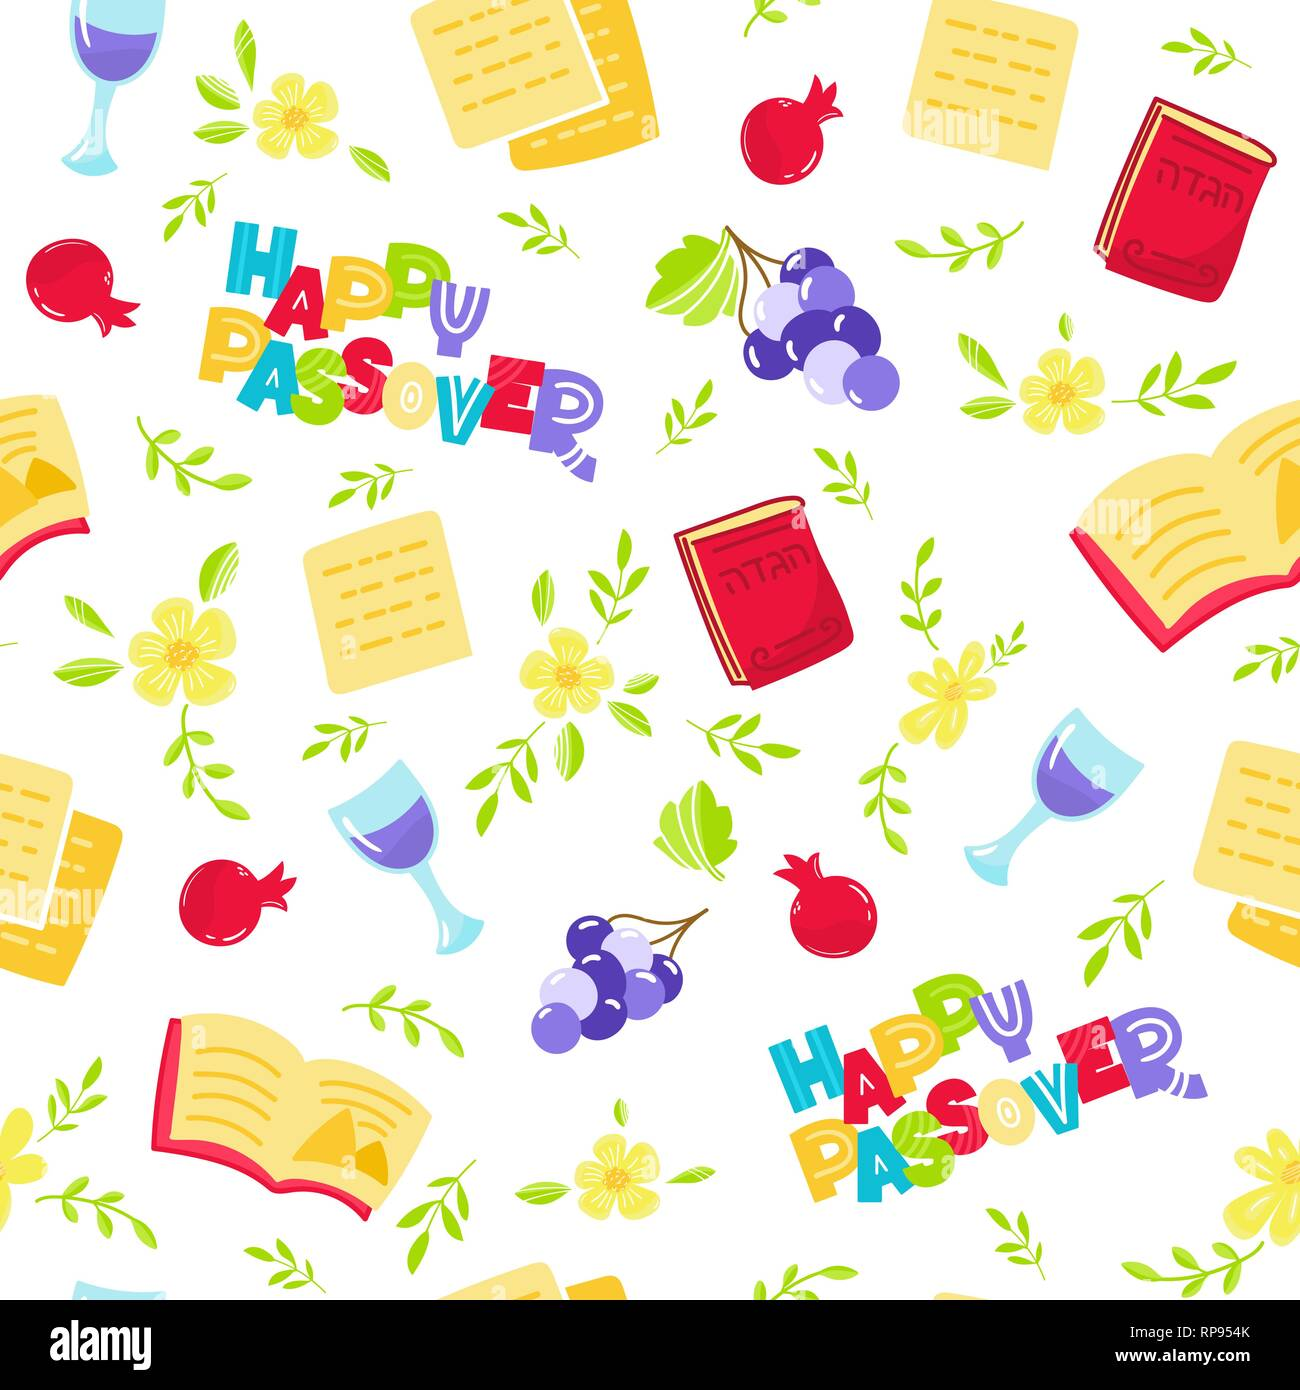 Passover seamless pattern (Jewish holiday Pesach). Hebrew text: happy Passover. Vector illustration doodle style. Isolated on white background. - Stock Vector